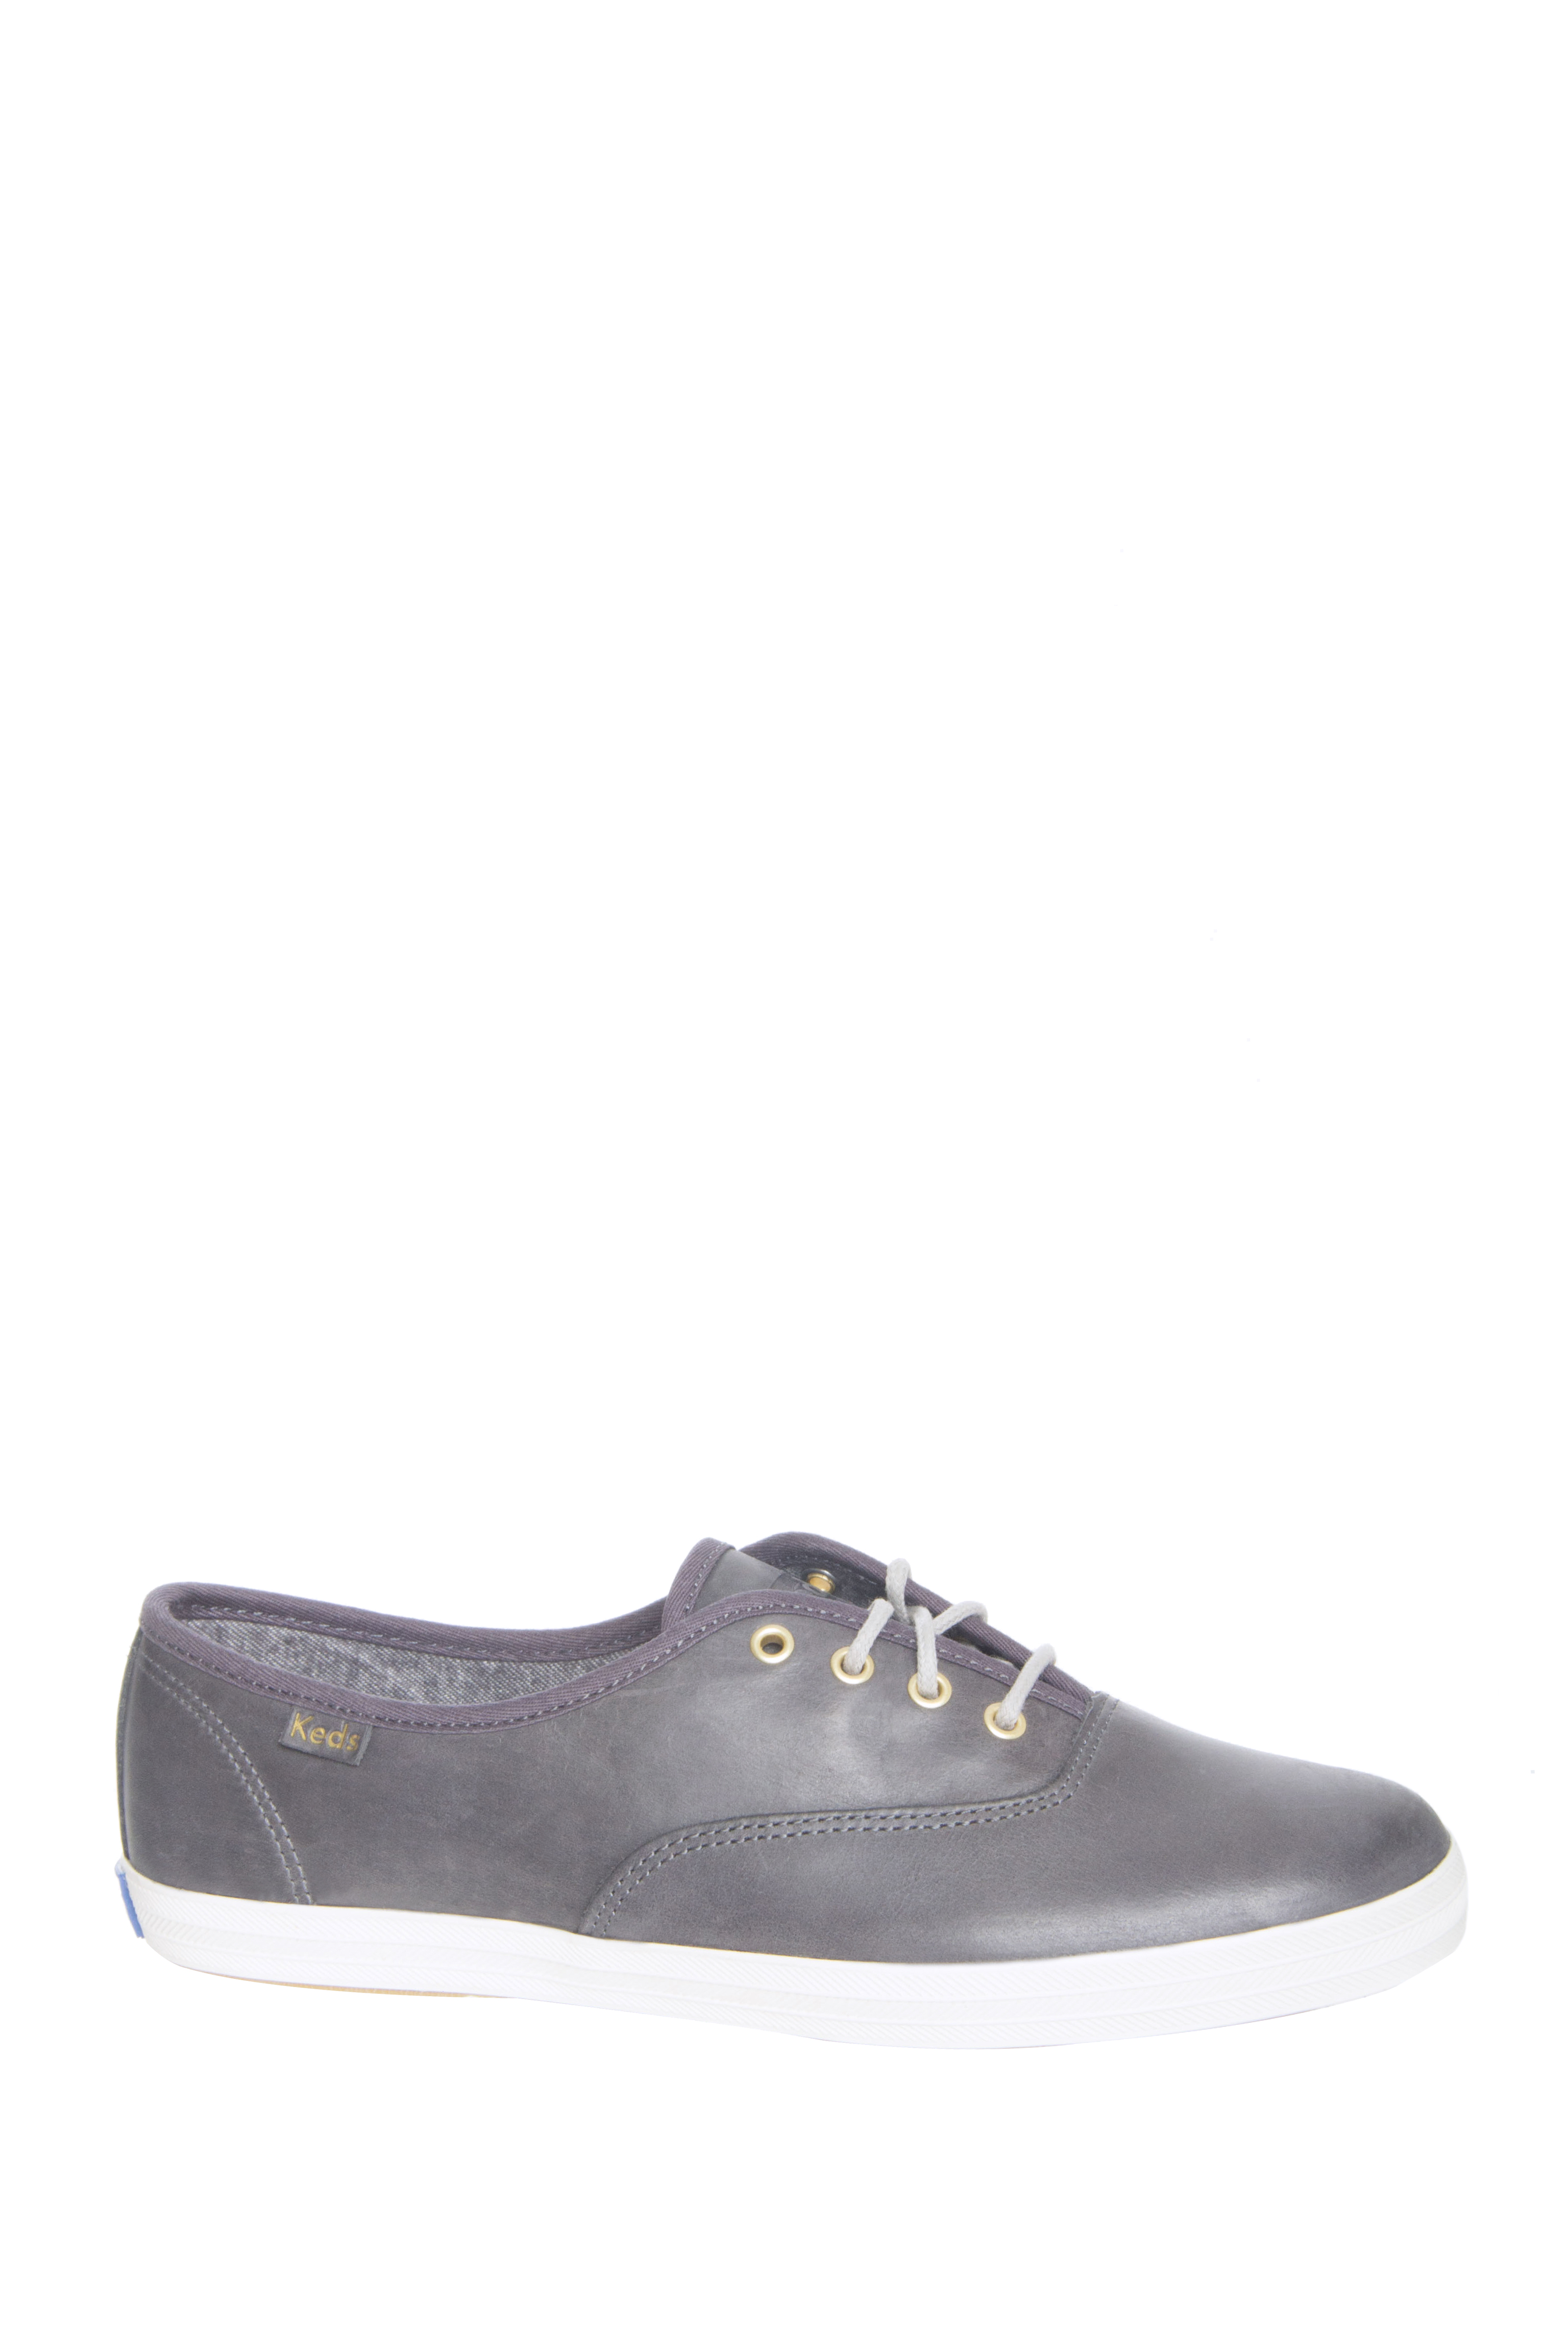 Keds Champion Burnished Leather Low Top Sneakers - Gunmetal